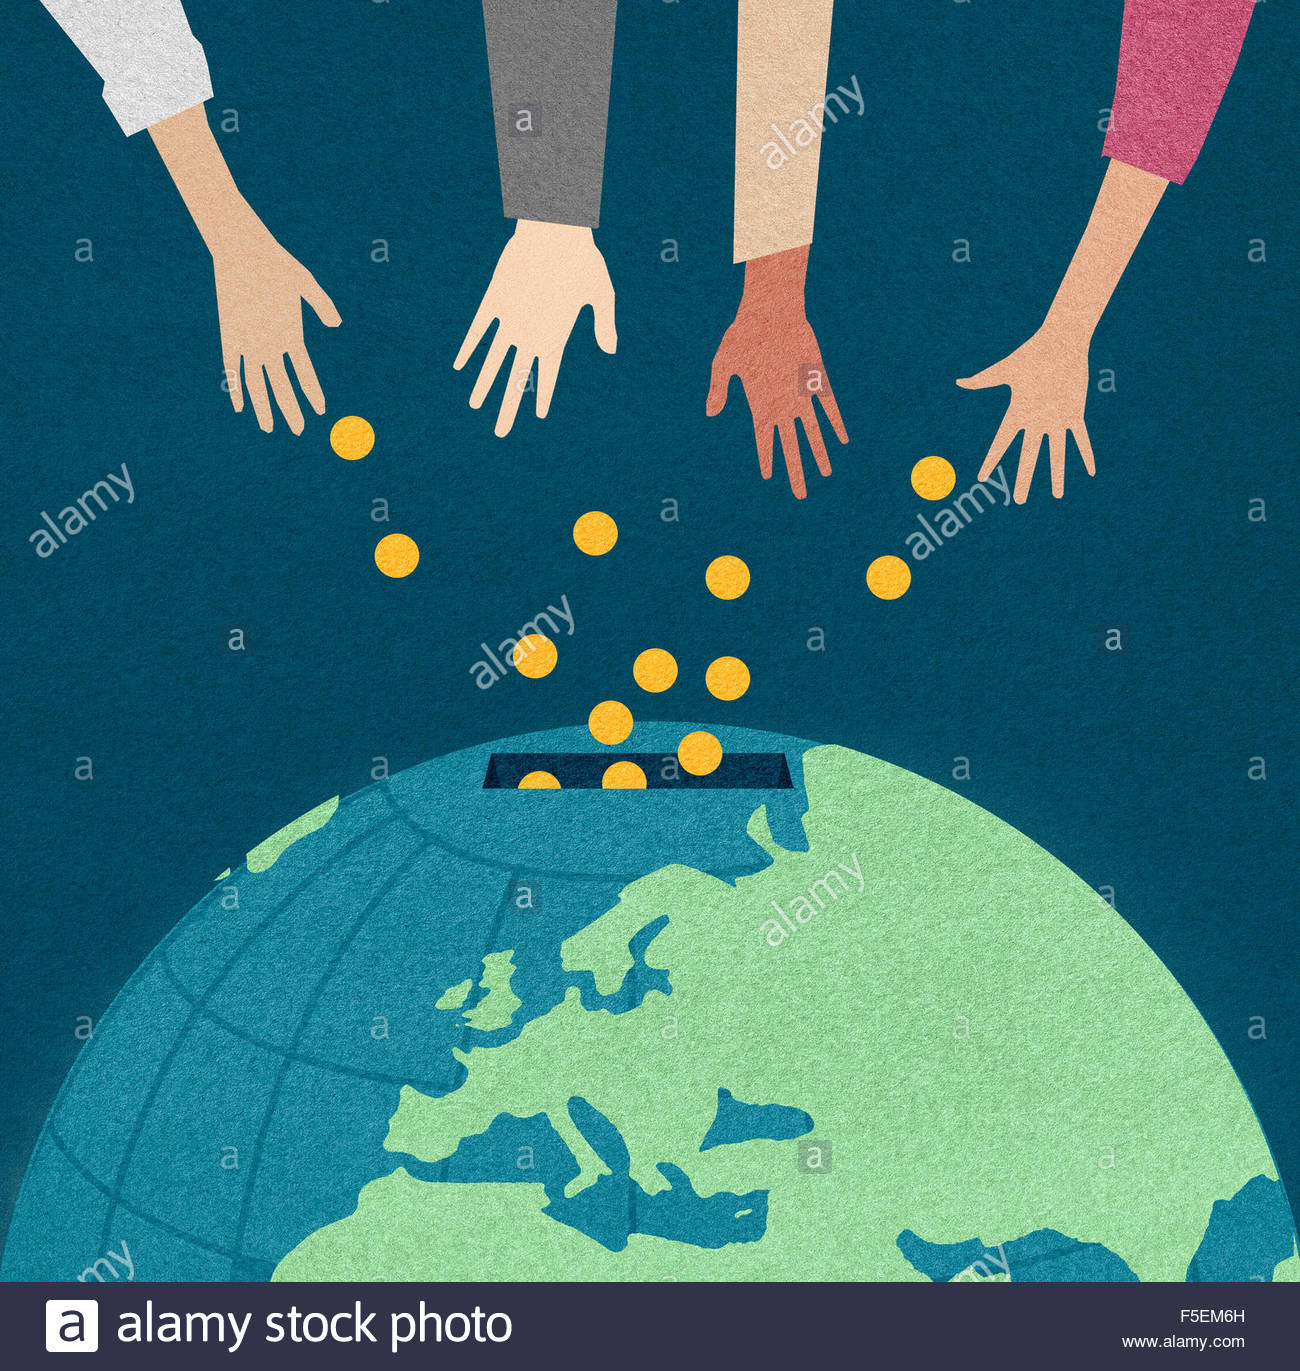 Hands donating money into world money box - Stock Image